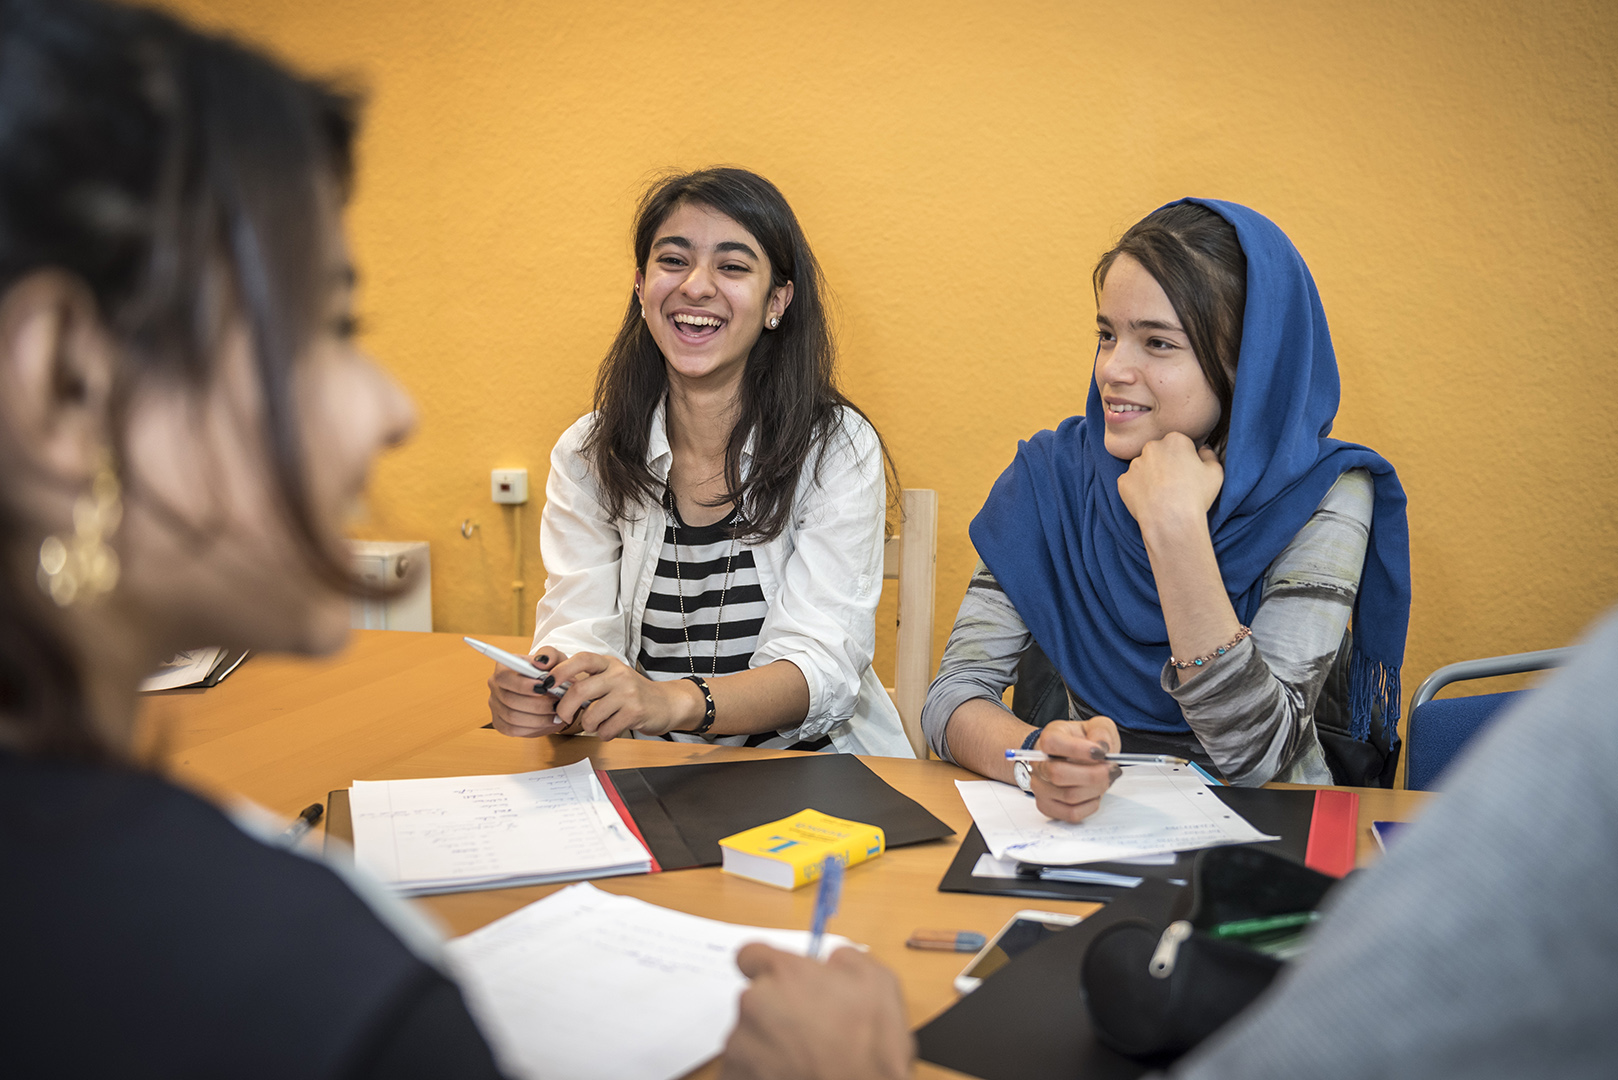 """Sanas Solimani (middle), age 15, from Afganistan, participant at the refugee summer school at """"lehrreich"""" in Berlin-Wilmersdorf, together with other asylum-seekers. Sanas dreams of being a pharmacist when she grows up. That's why she's spent her summer holiday studying German. Germany, Berlin, 29/08/2016"""